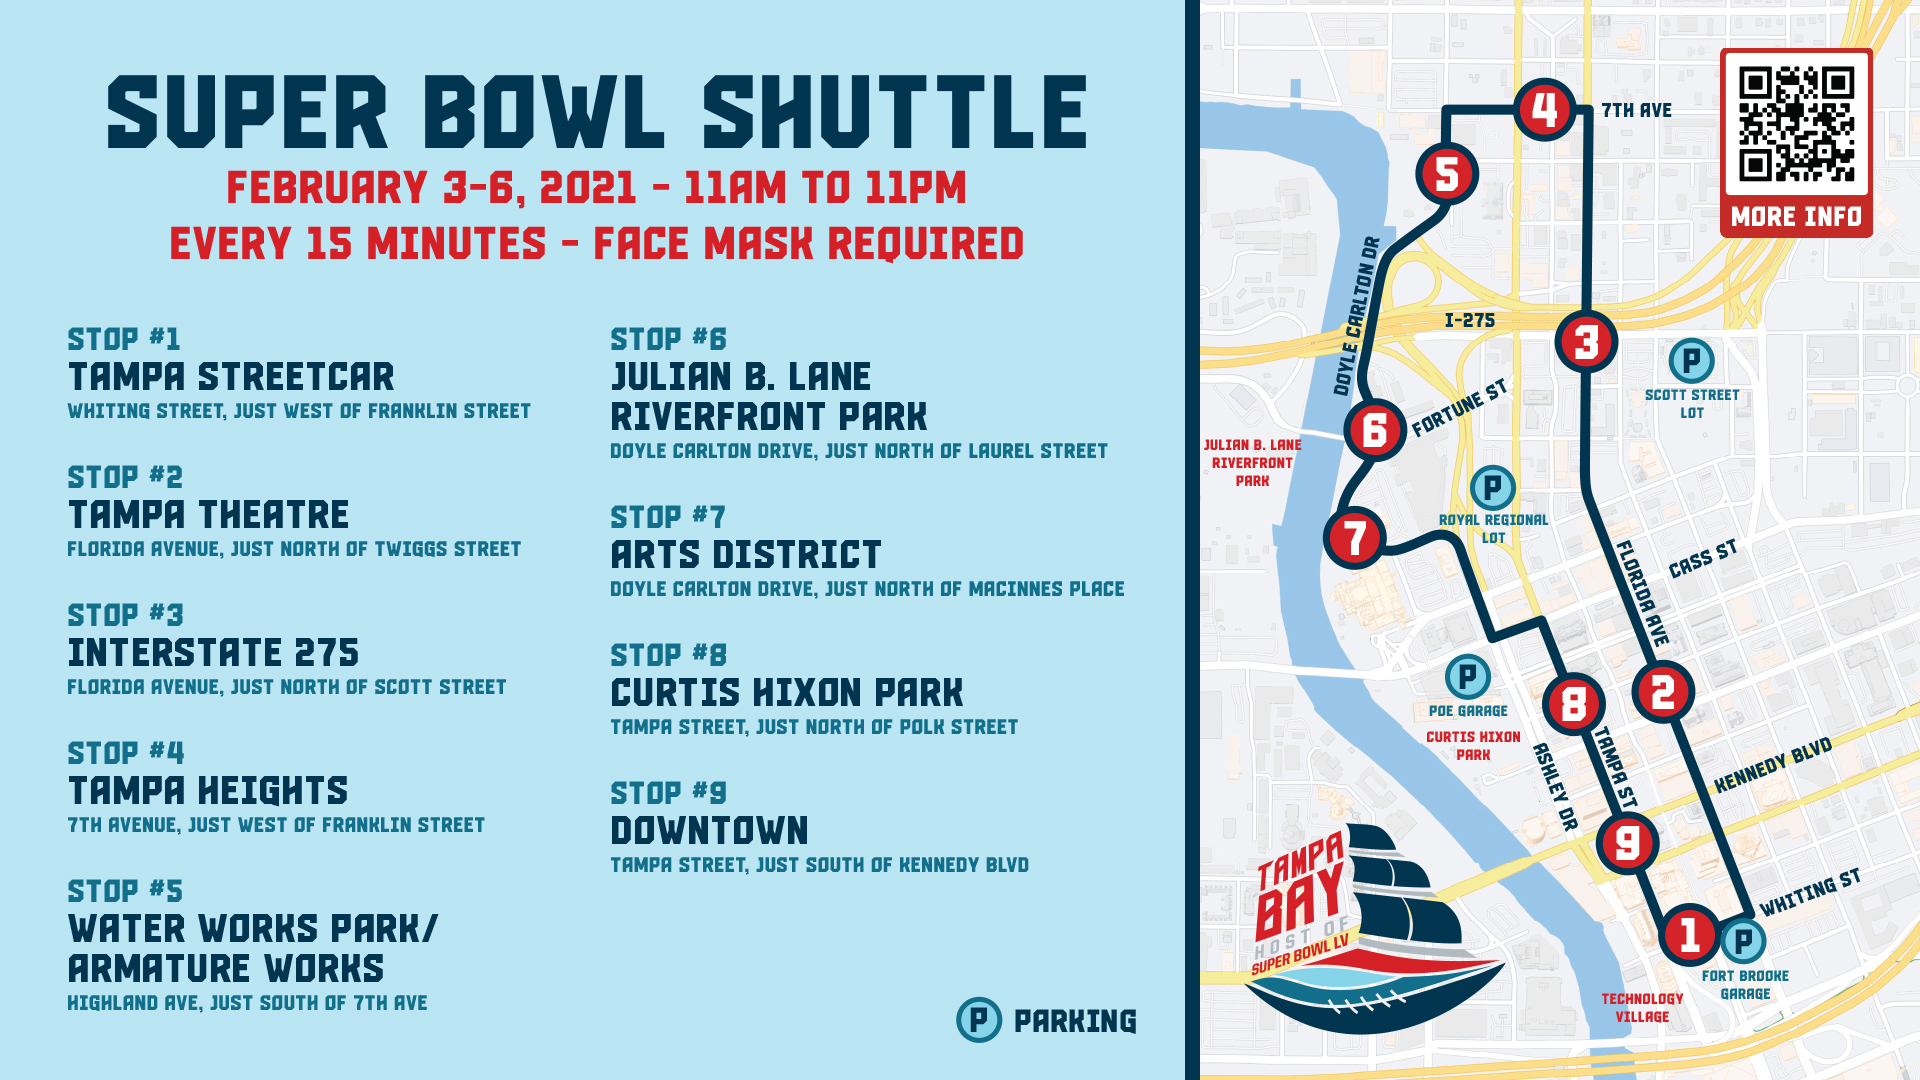 Super Bowl Shuttle Map Graphic